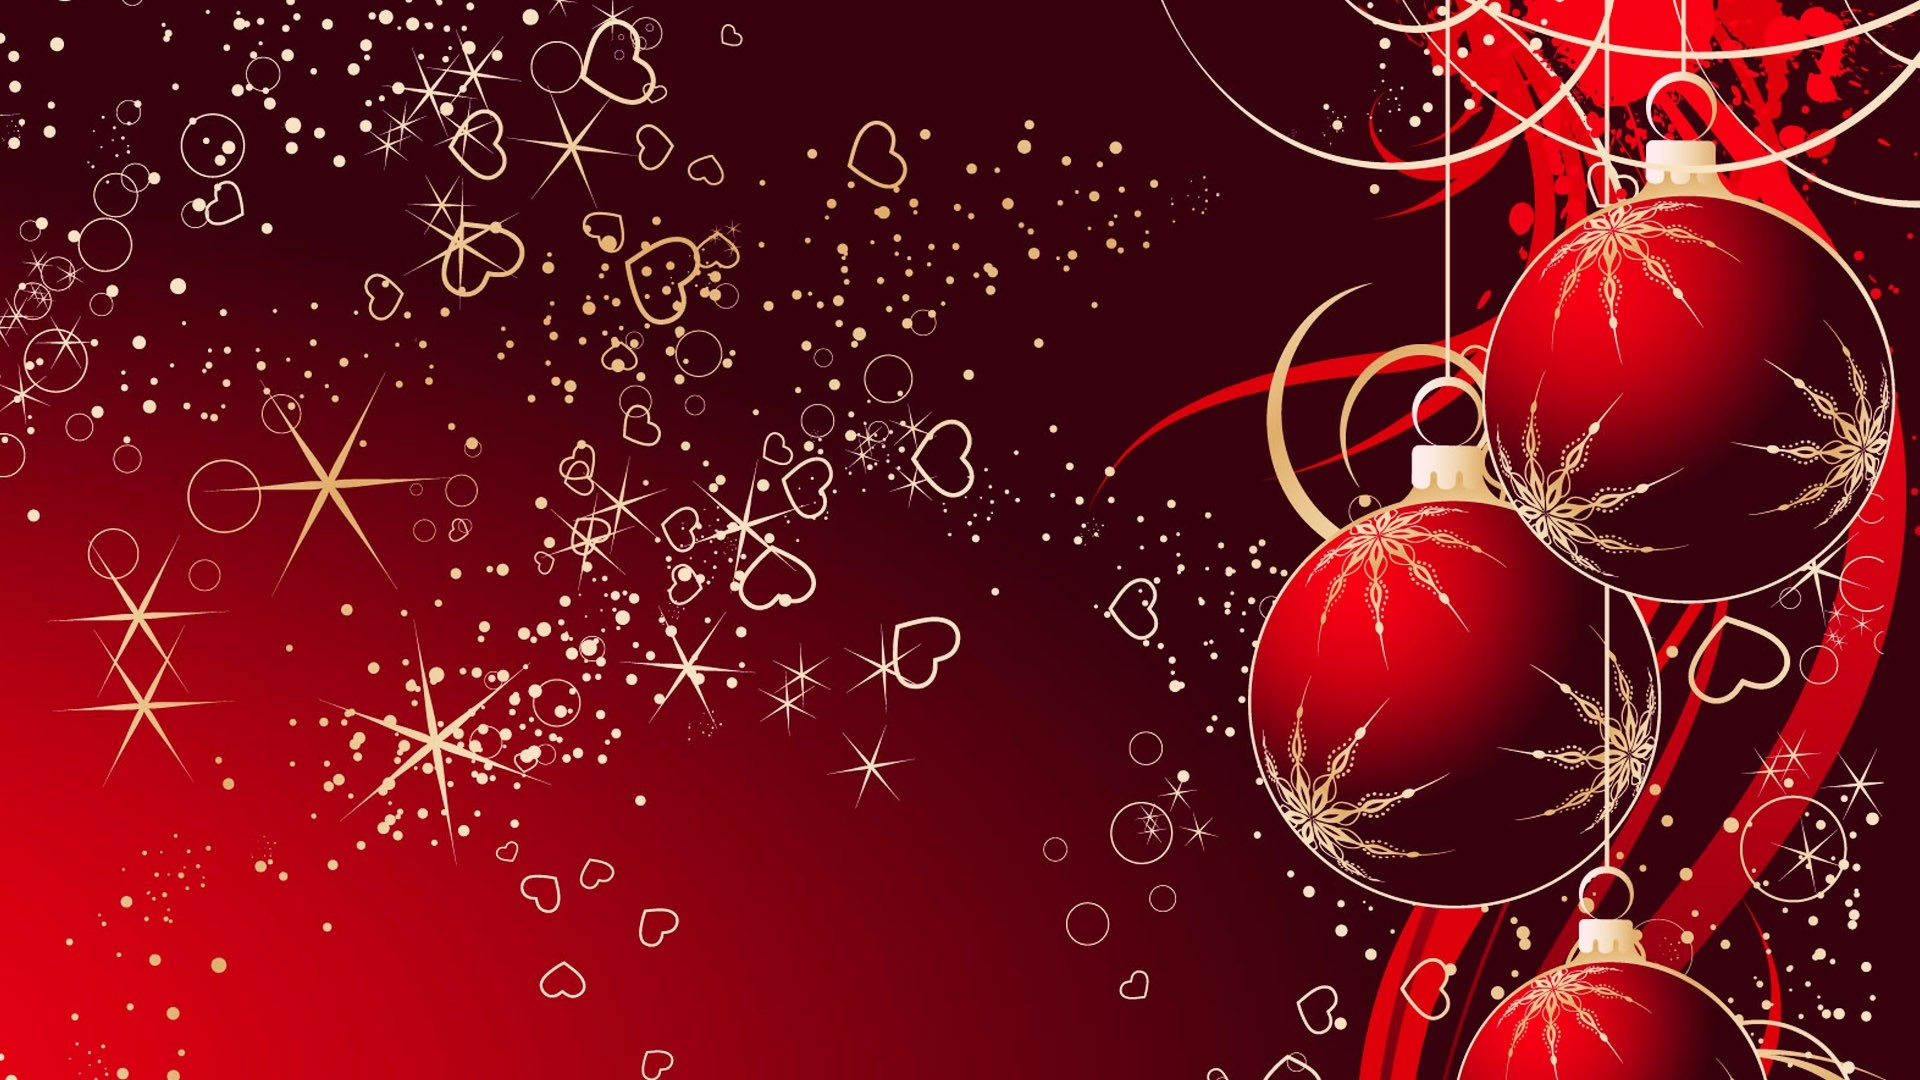 Xmas Wallpaper ·① Download Free Awesome Wallpapers For